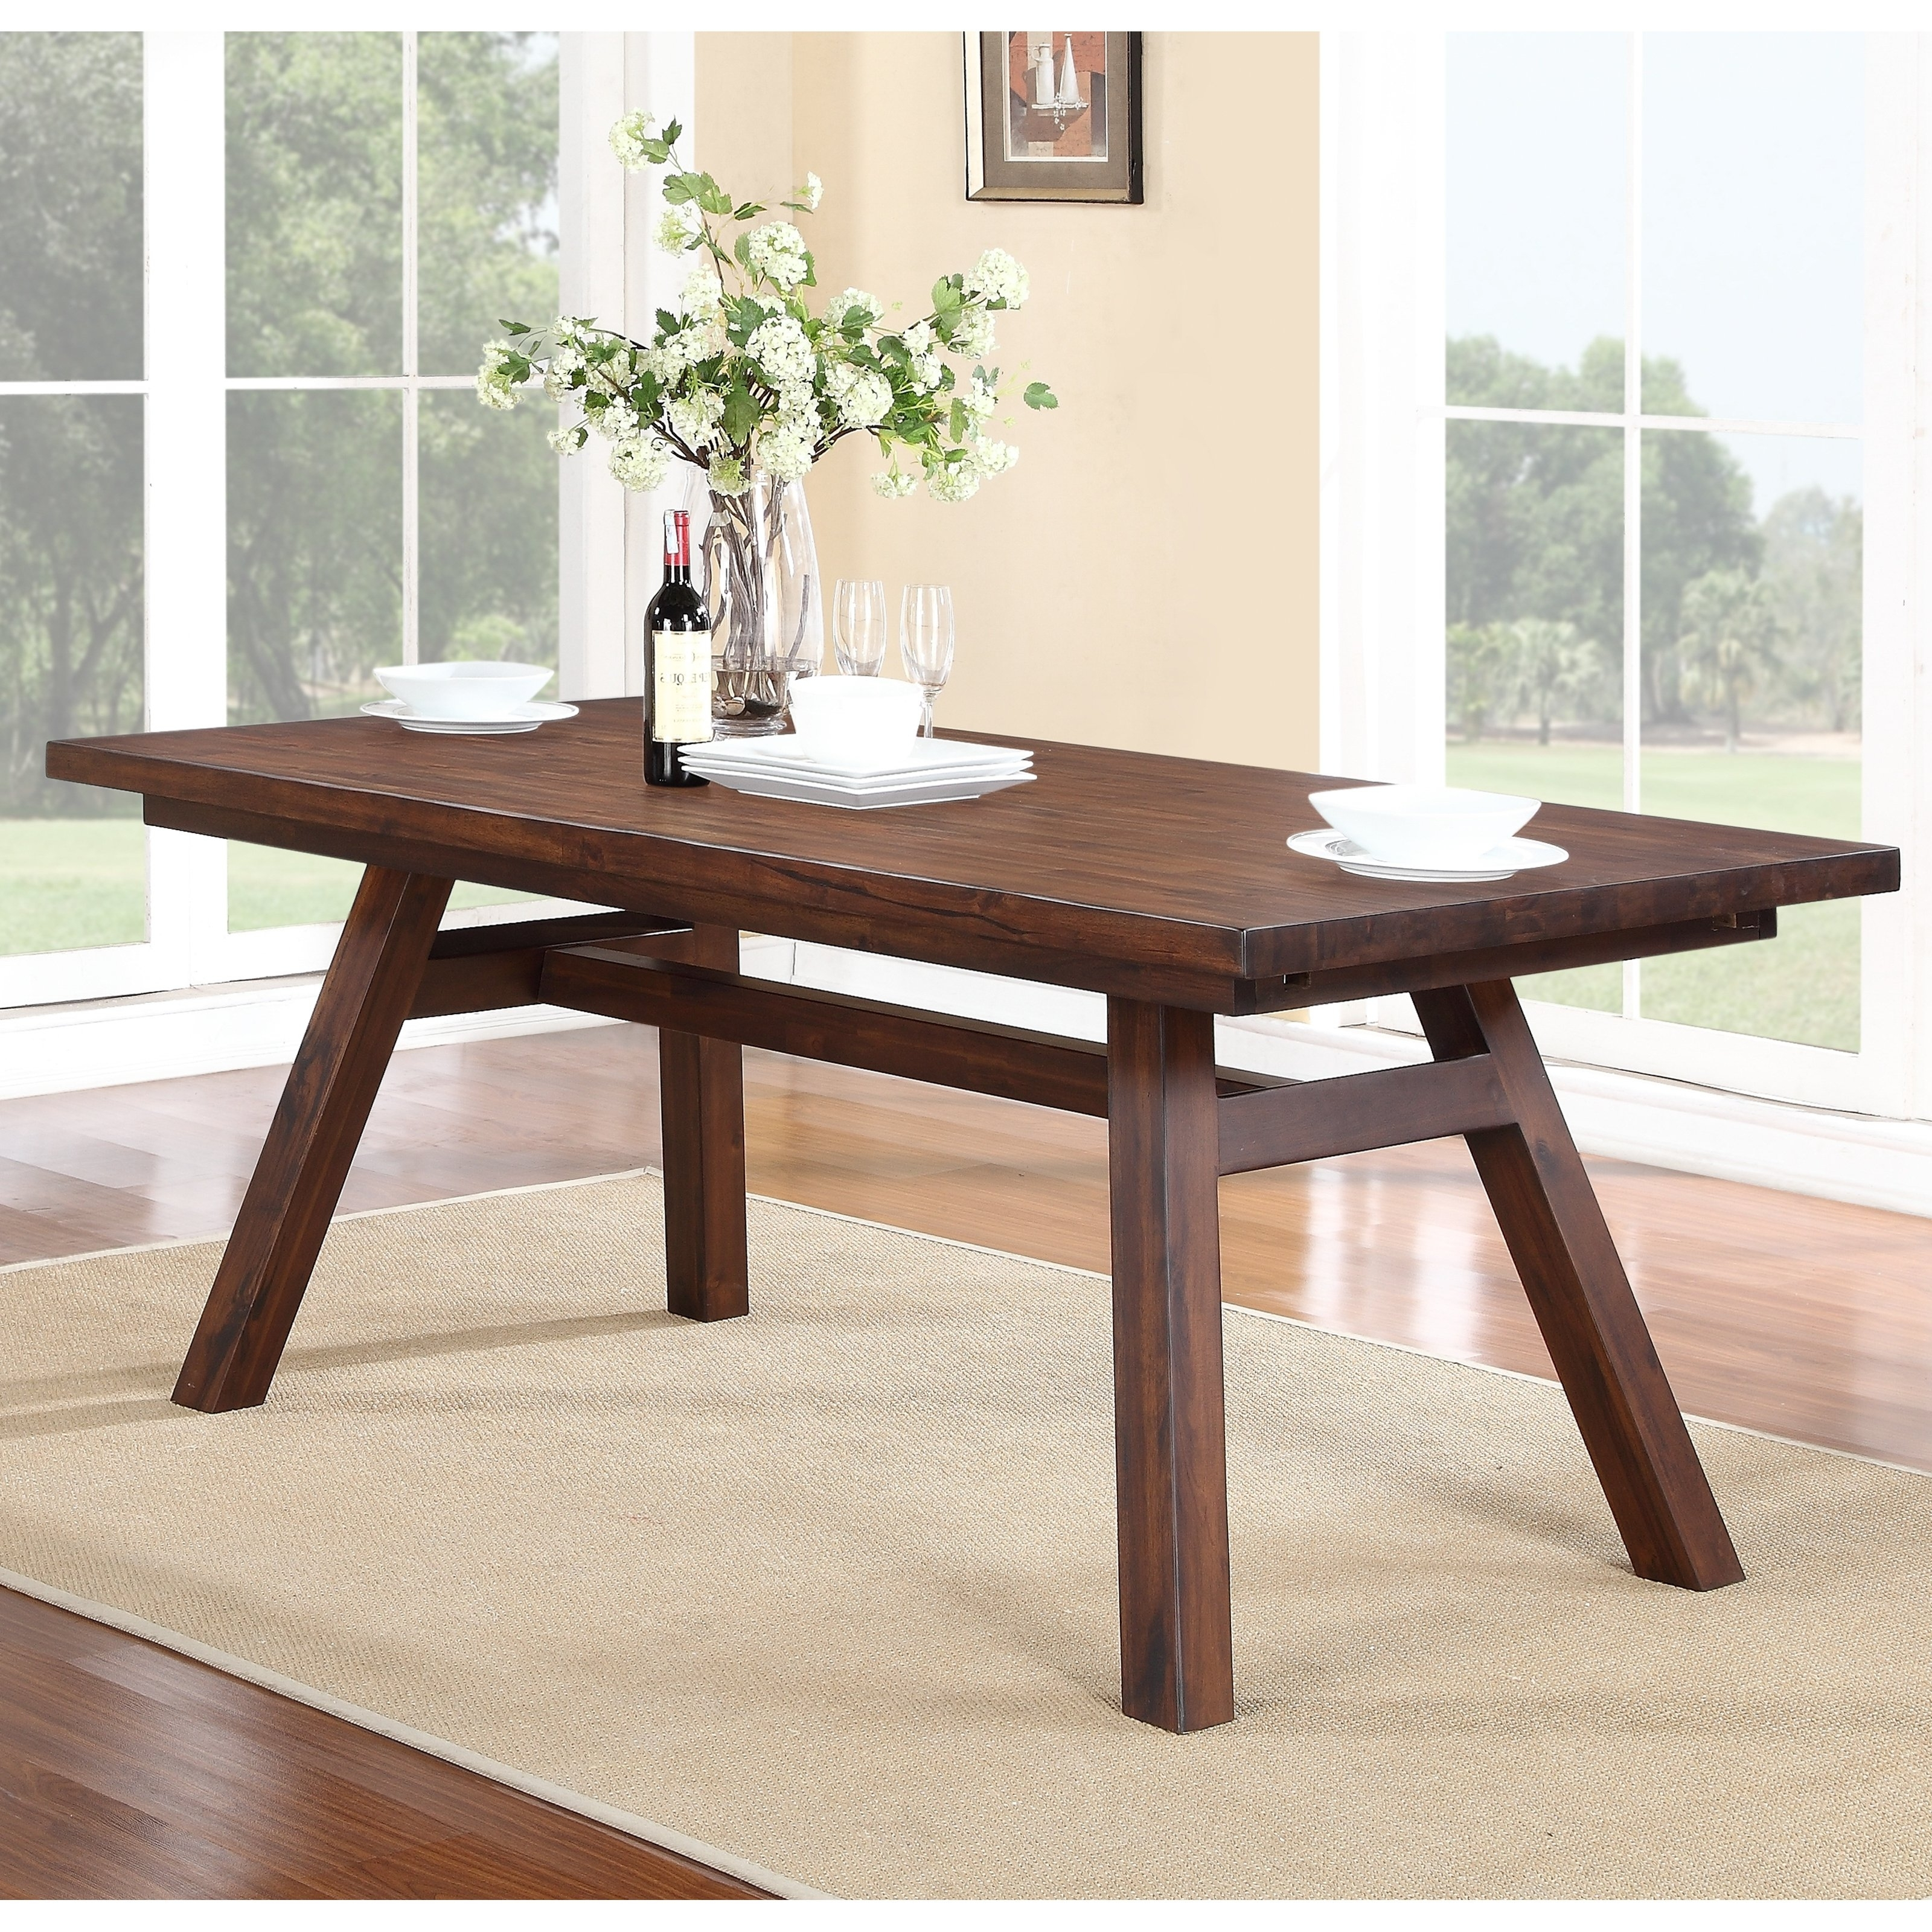 2017 Modus Portland Solid Wood Rectangular Extension Table – Medium Walnut With Regard To Lassen Extension Rectangle Dining Tables (Gallery 12 of 25)